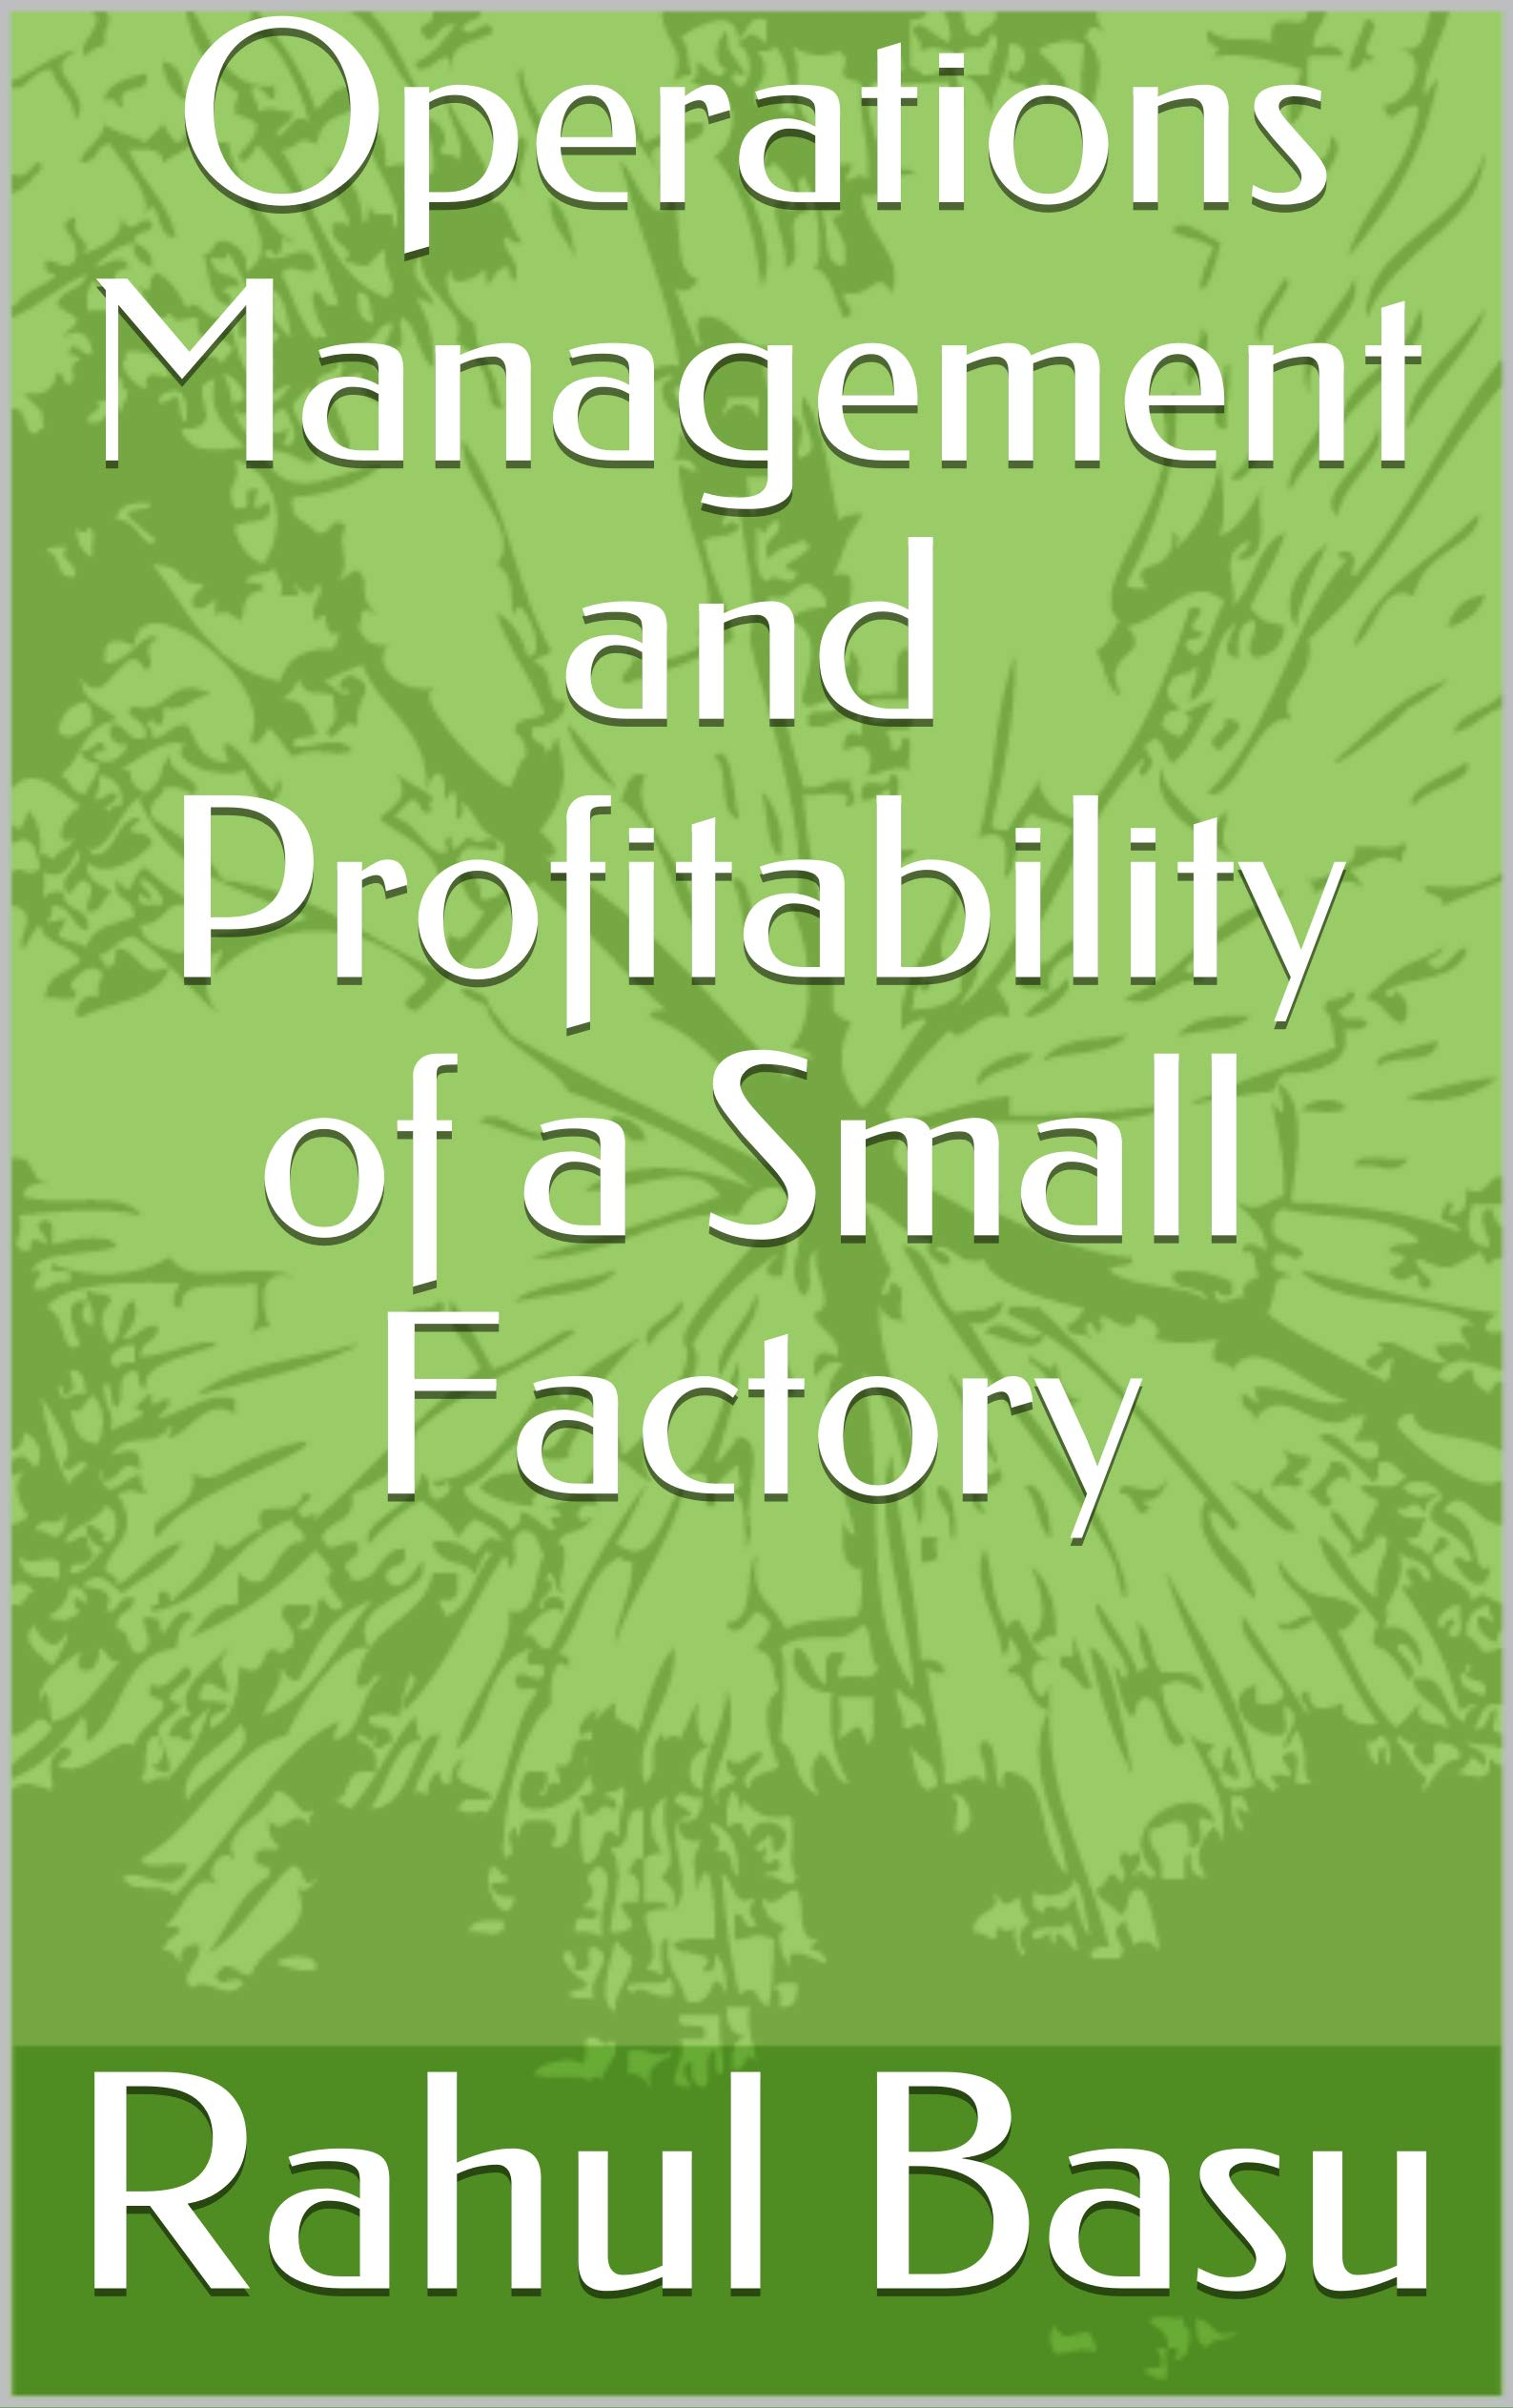 Operations Management and Profitability of a Small Factory